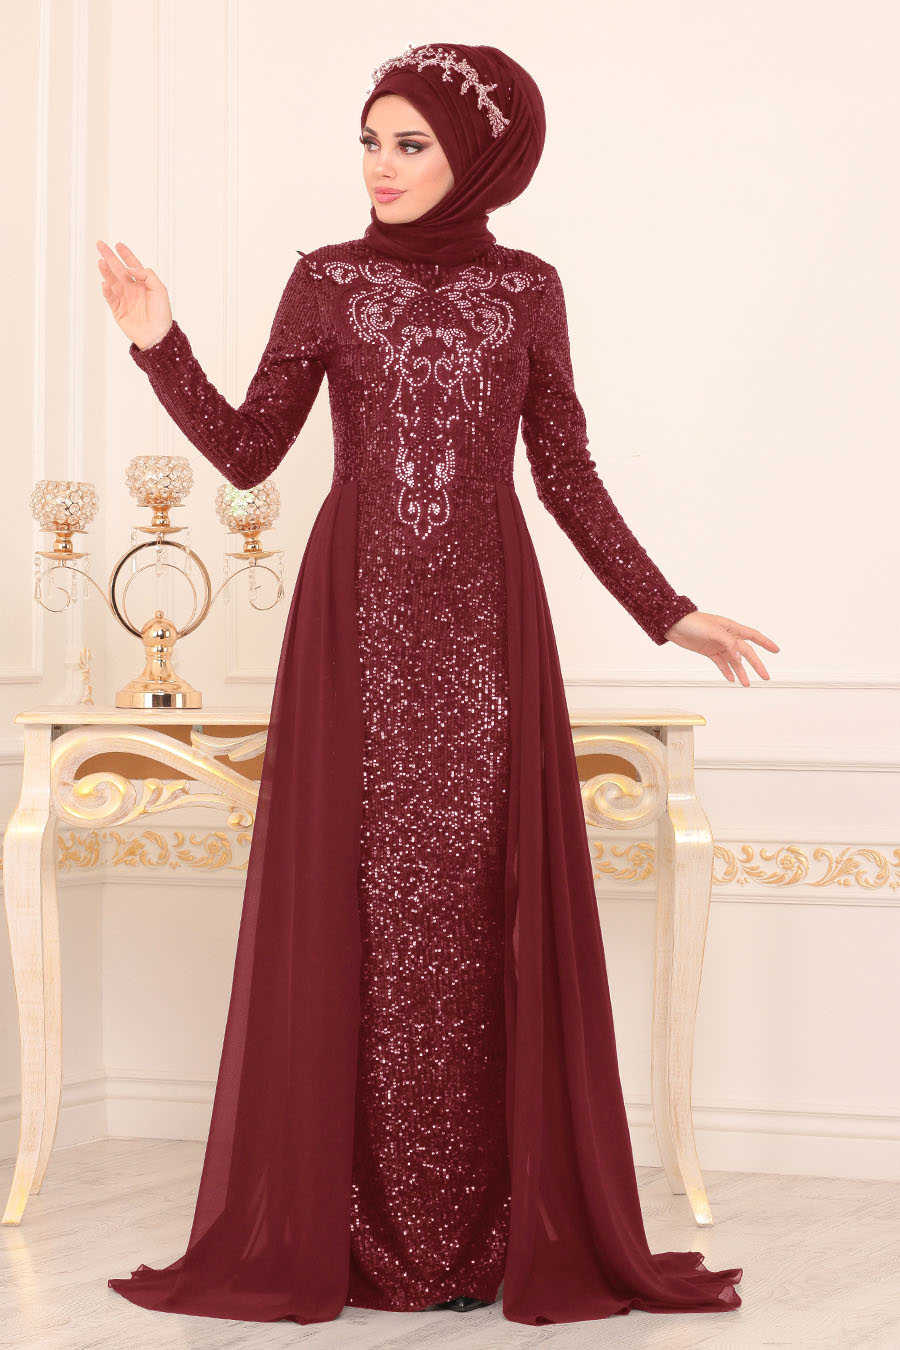 Neva Style - Claret Red Hijab Evening Dress 25724BR